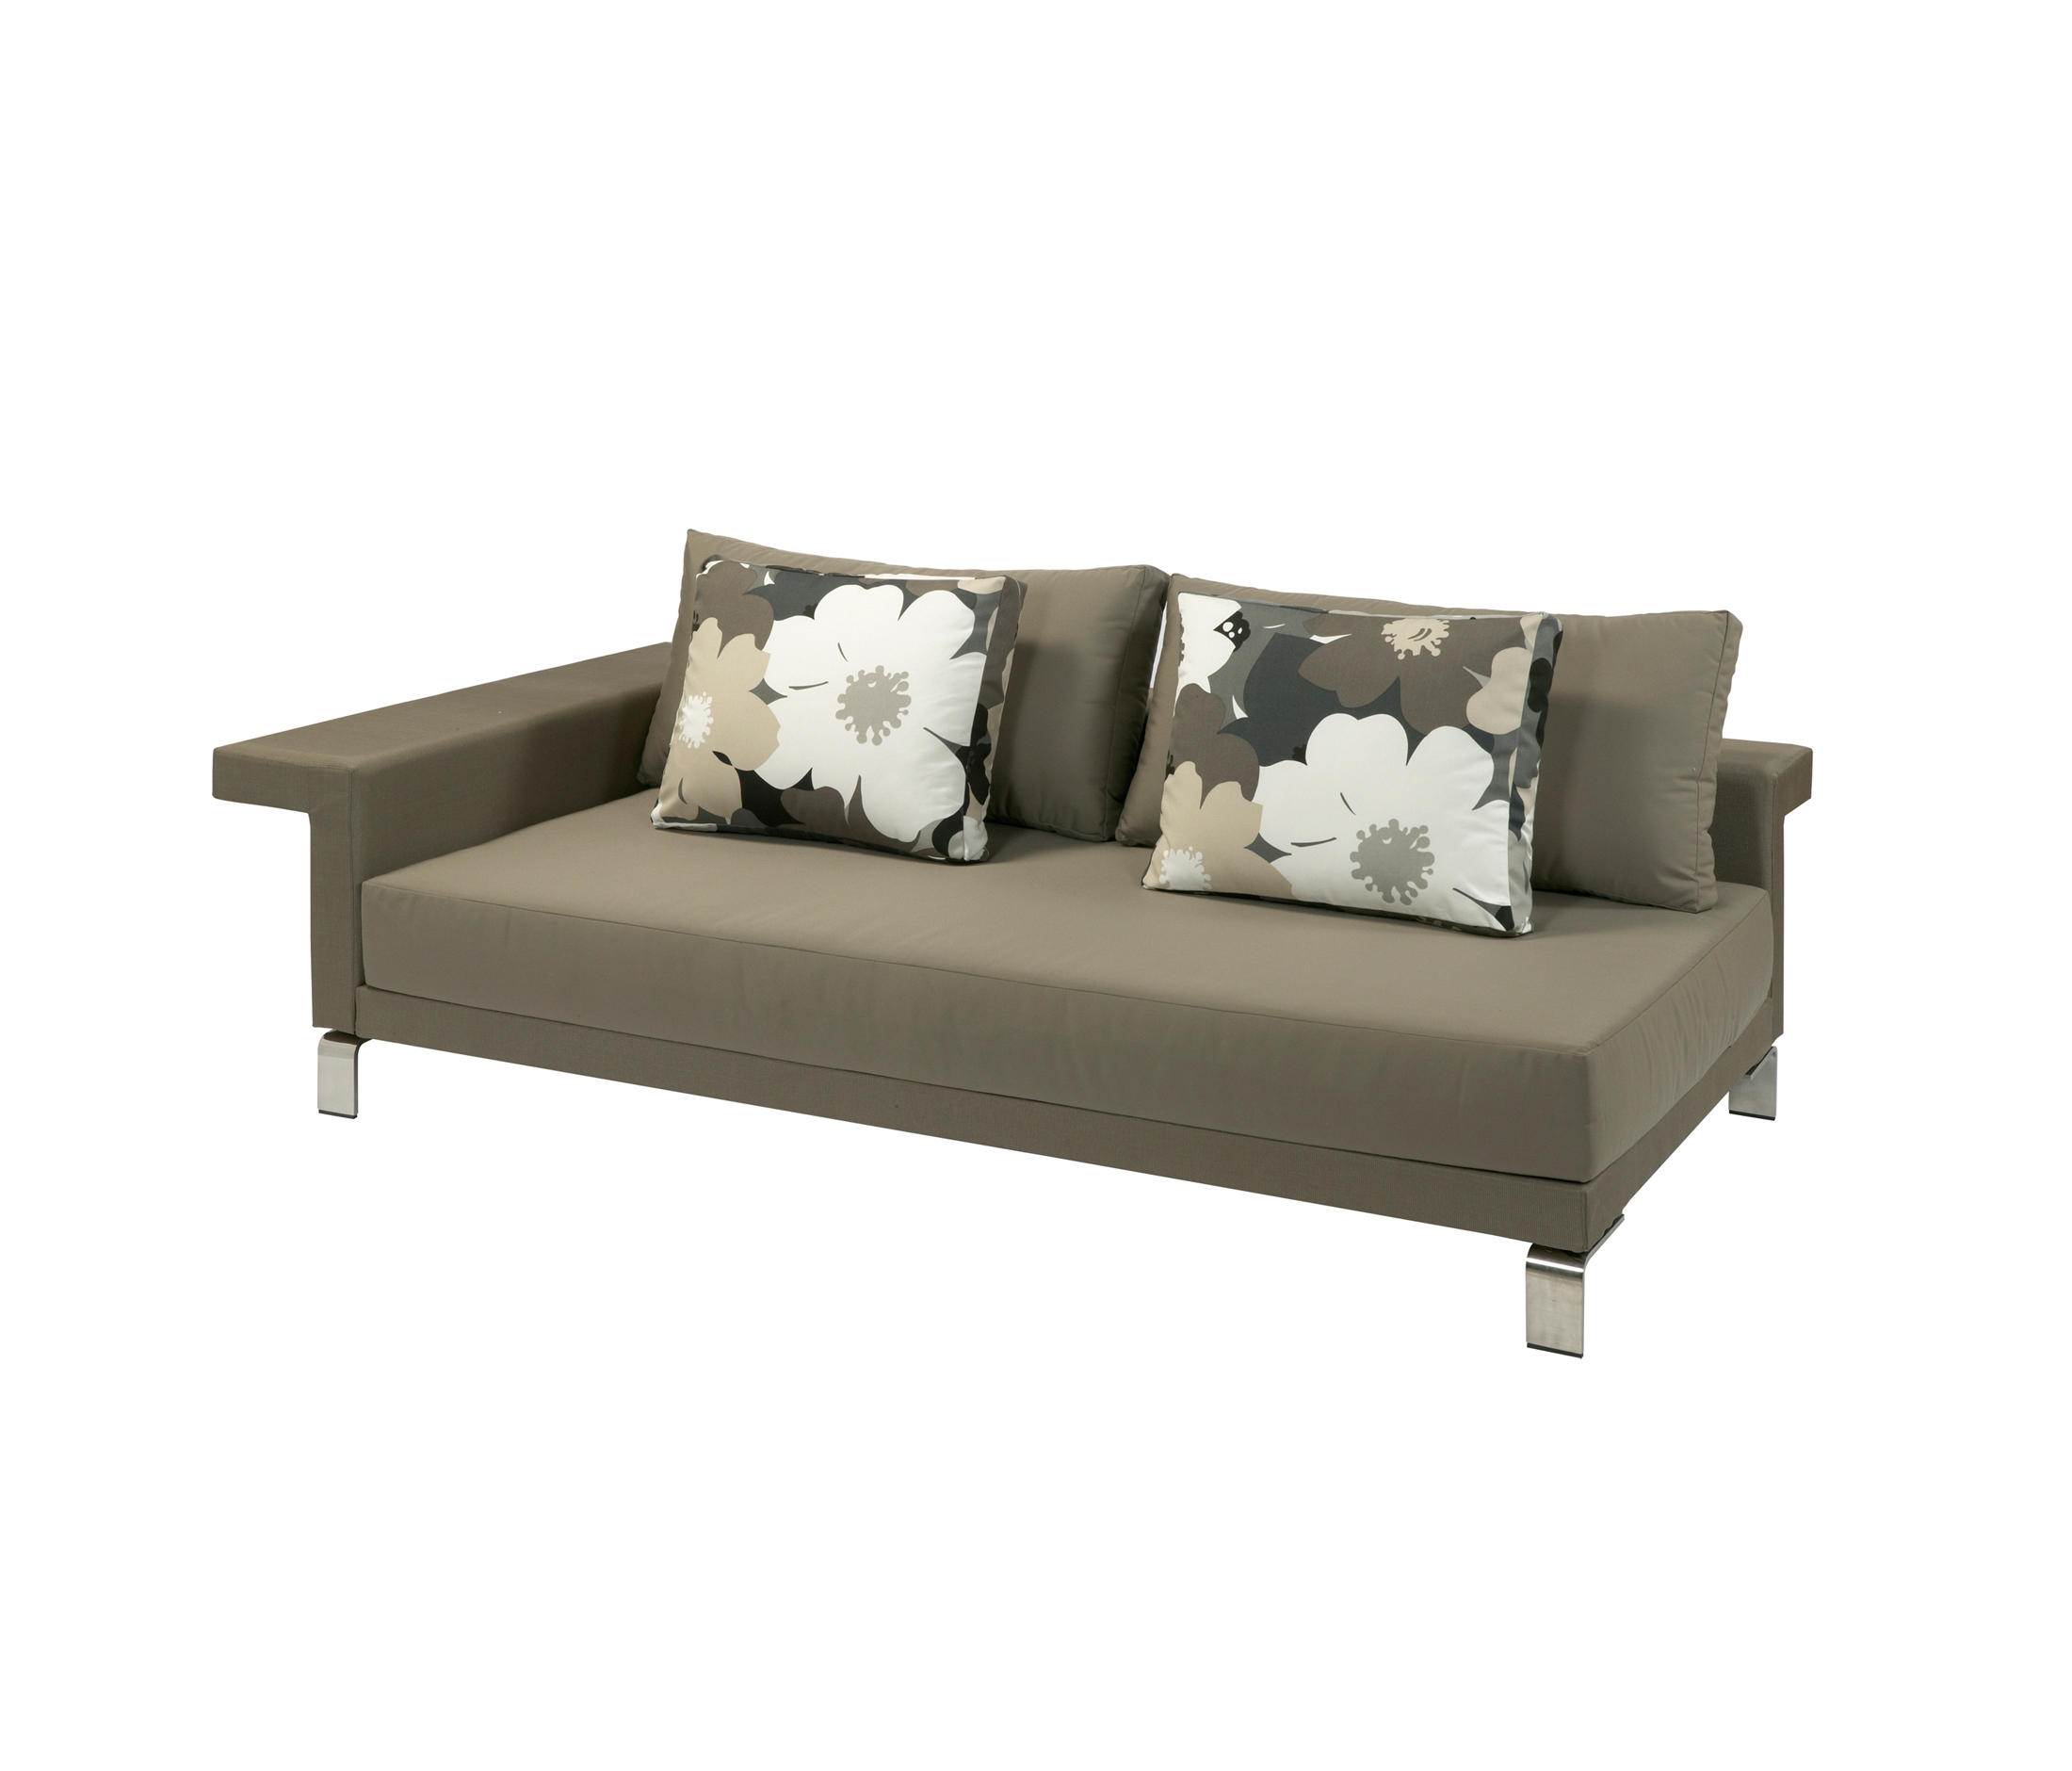 Palma sofa module garden sofas from val eur architonic for Furniture palma